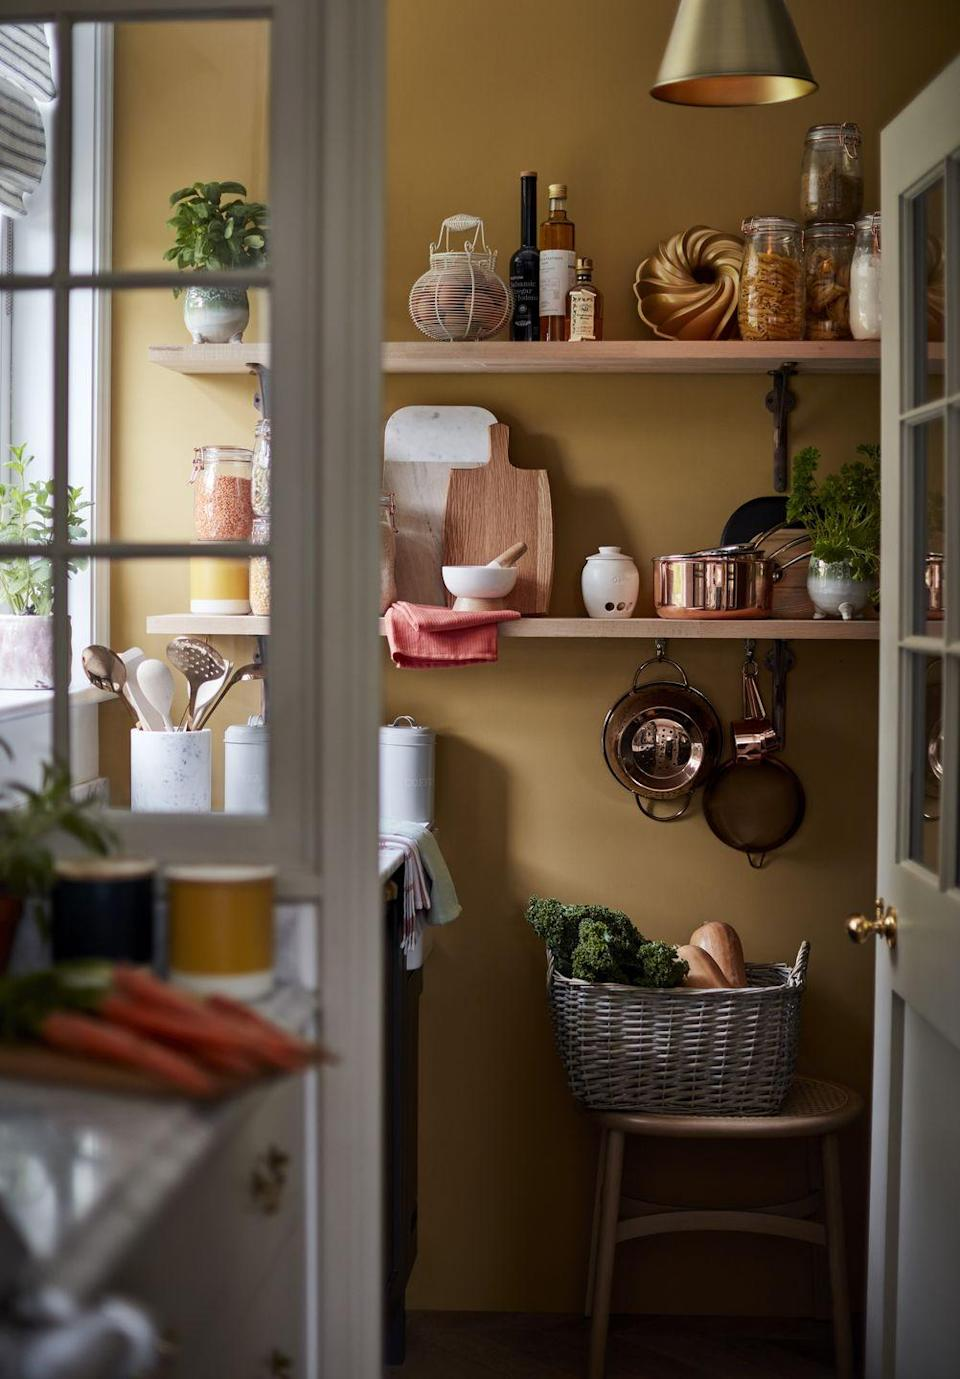 """<p>If you're lucky enough to have your own <a href=""""https://www.housebeautiful.com/uk/decorate/kitchen/g27318935/kitchen-larder-ideas/"""" rel=""""nofollow noopener"""" target=""""_blank"""" data-ylk=""""slk:pantry"""" class=""""link rapid-noclick-resp"""">pantry</a>, don't forget to give it a little love. As part of the Modern Country trend, experiment with chalky colours, practical storage solutions and pretty pots for utensils. </p><p><strong>READ MORE</strong>: <a href=""""https://www.housebeautiful.com/uk/decorate/kitchen/g27318935/kitchen-larder-ideas/"""" rel=""""nofollow noopener"""" target=""""_blank"""" data-ylk=""""slk:21 really stylish and practical pantry ideas for your kitchen"""" class=""""link rapid-noclick-resp"""">21 really stylish and practical pantry ideas for your kitchen</a></p>"""